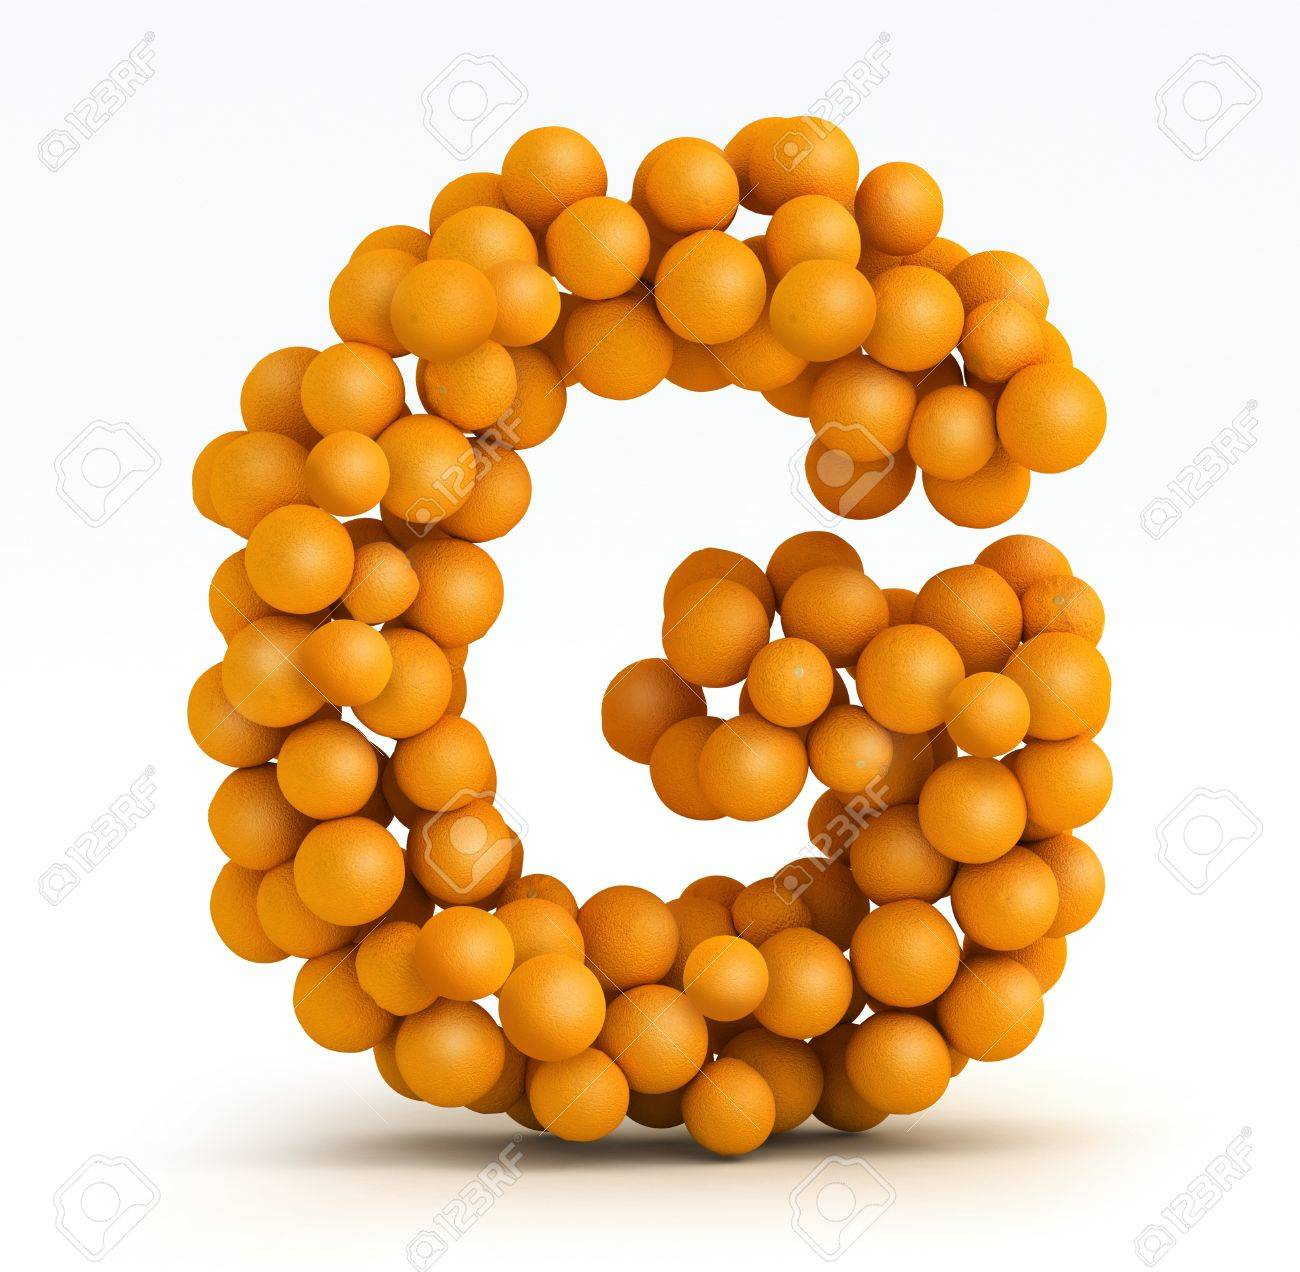 Letter G, font of orange citrus fruits on white background Stock Photo - 13285559